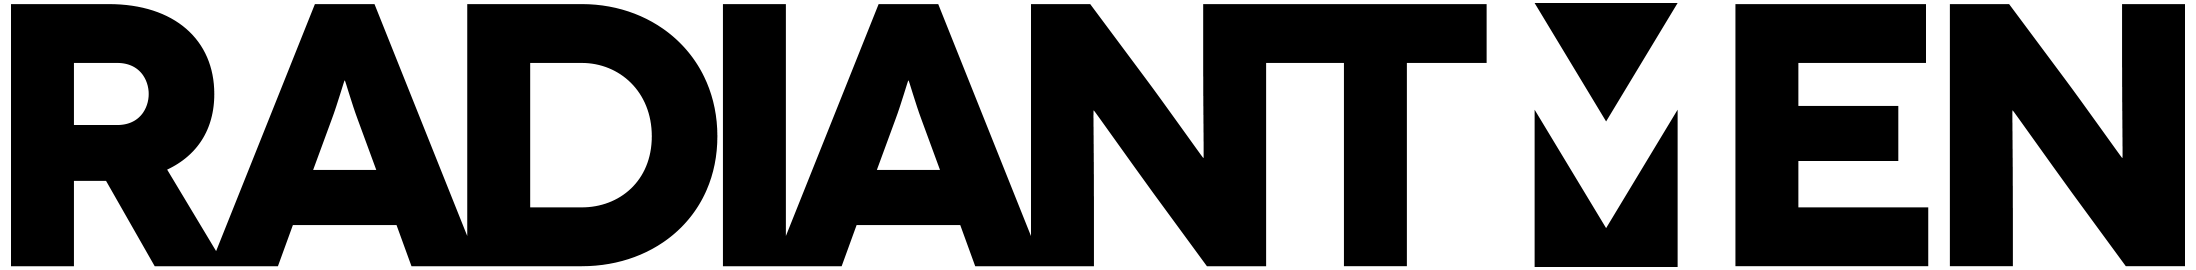 Radiantmen_logotype_black.png